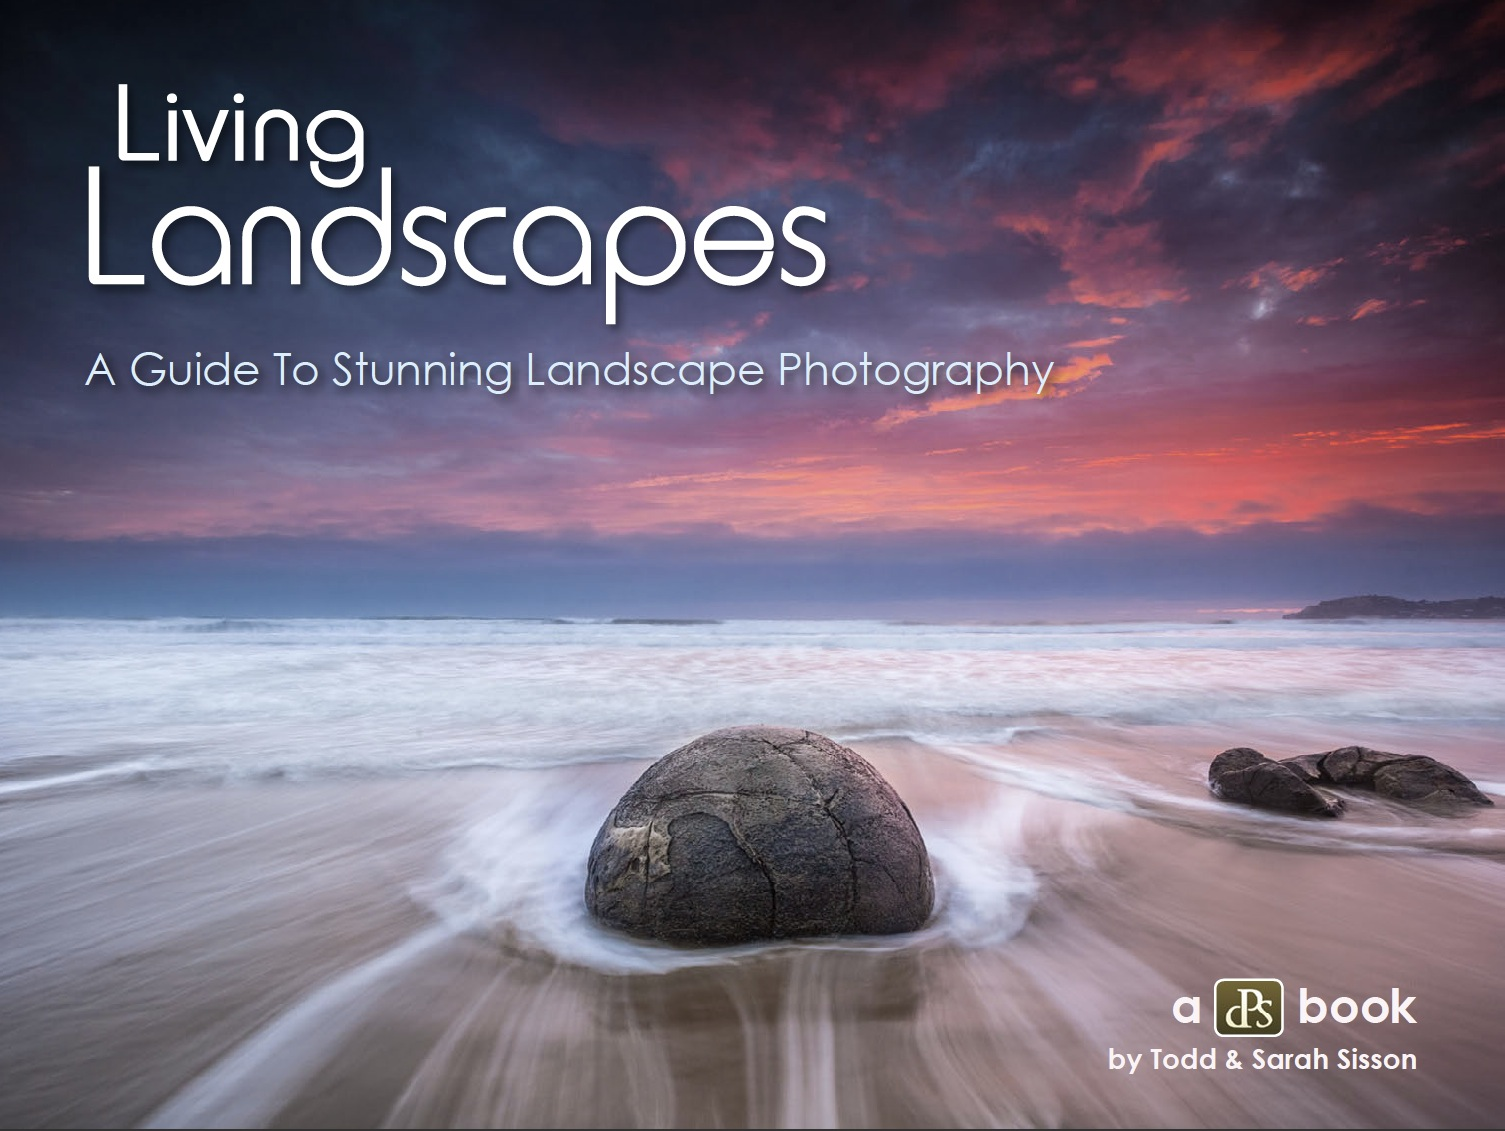 Living Landscapes ebook Todd Sisson Digital Photography School